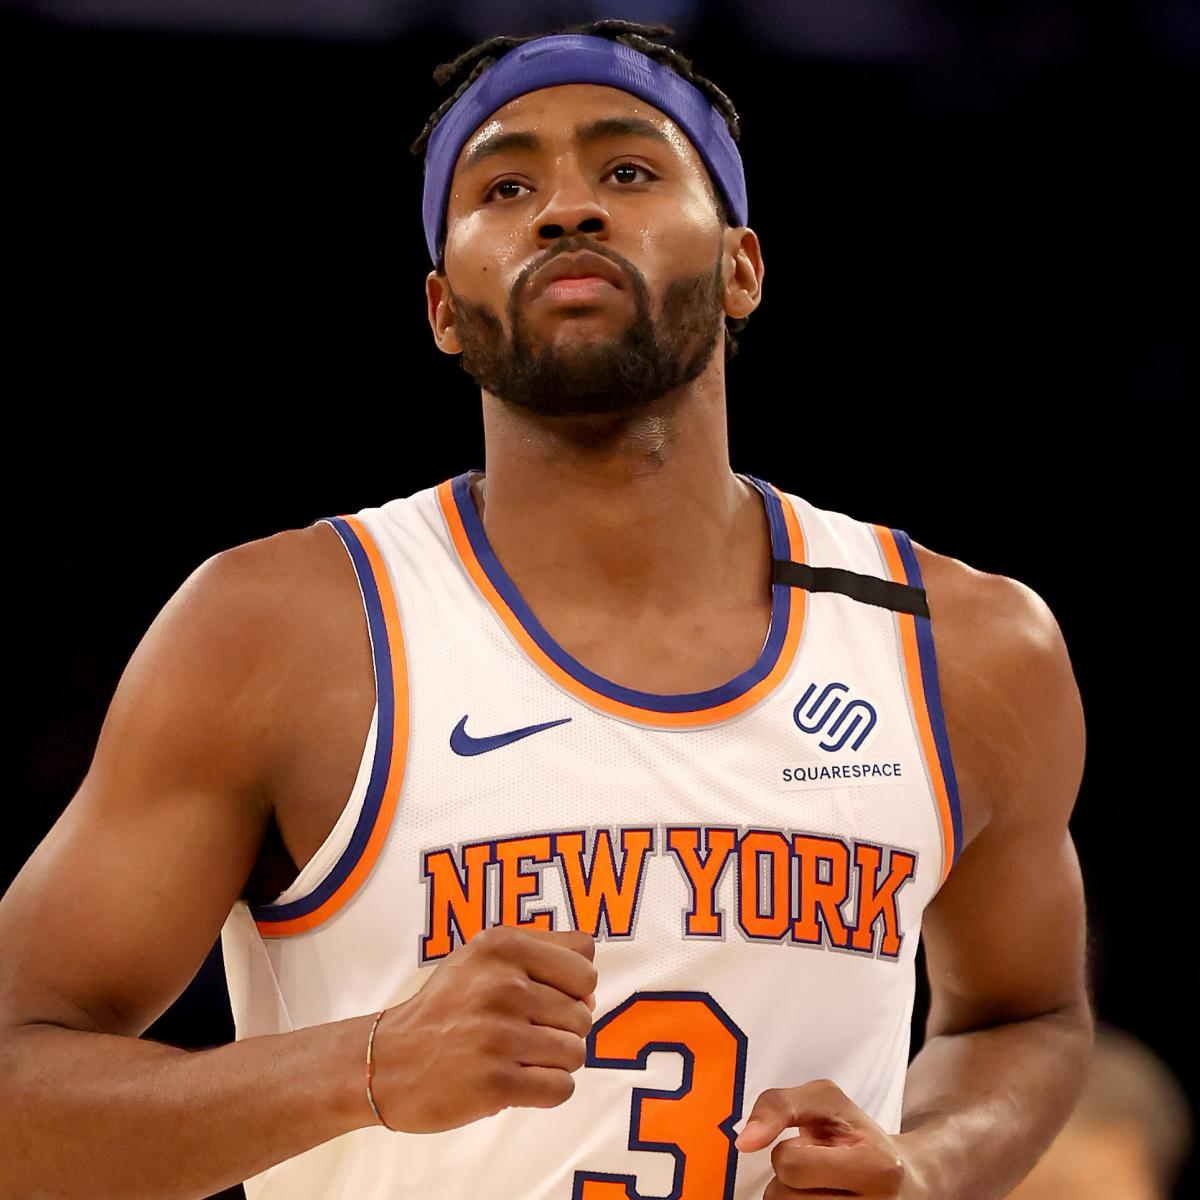 Knicks News: Moe Harkless to Finish Season with NY After Lakers Rumors